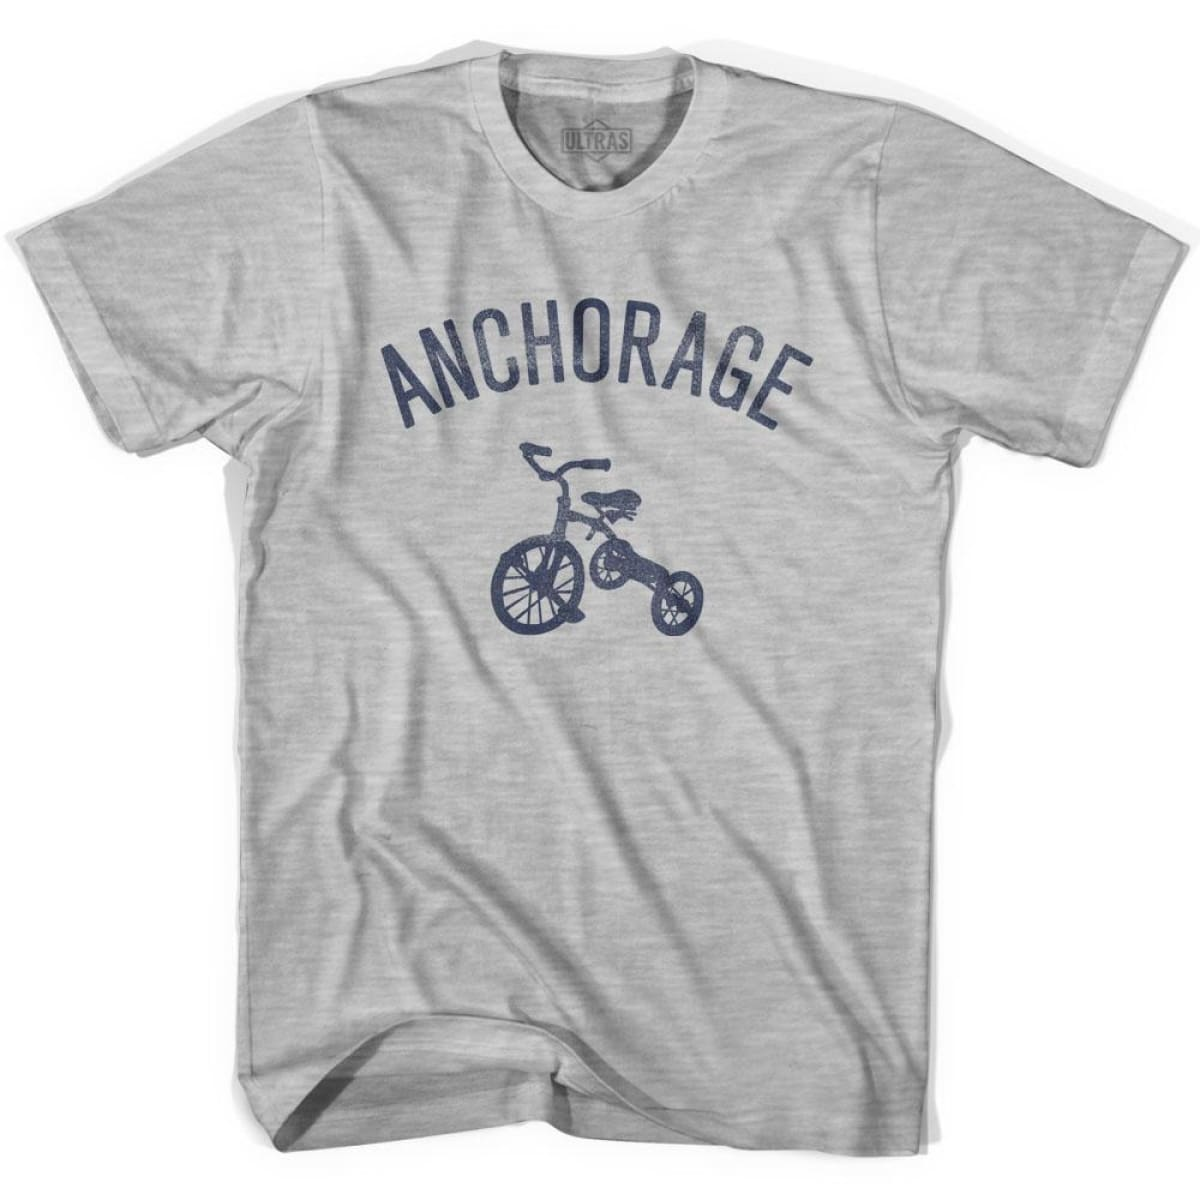 Anchorage City Tricycle Youth Cotton T-shirt - Tricycle City